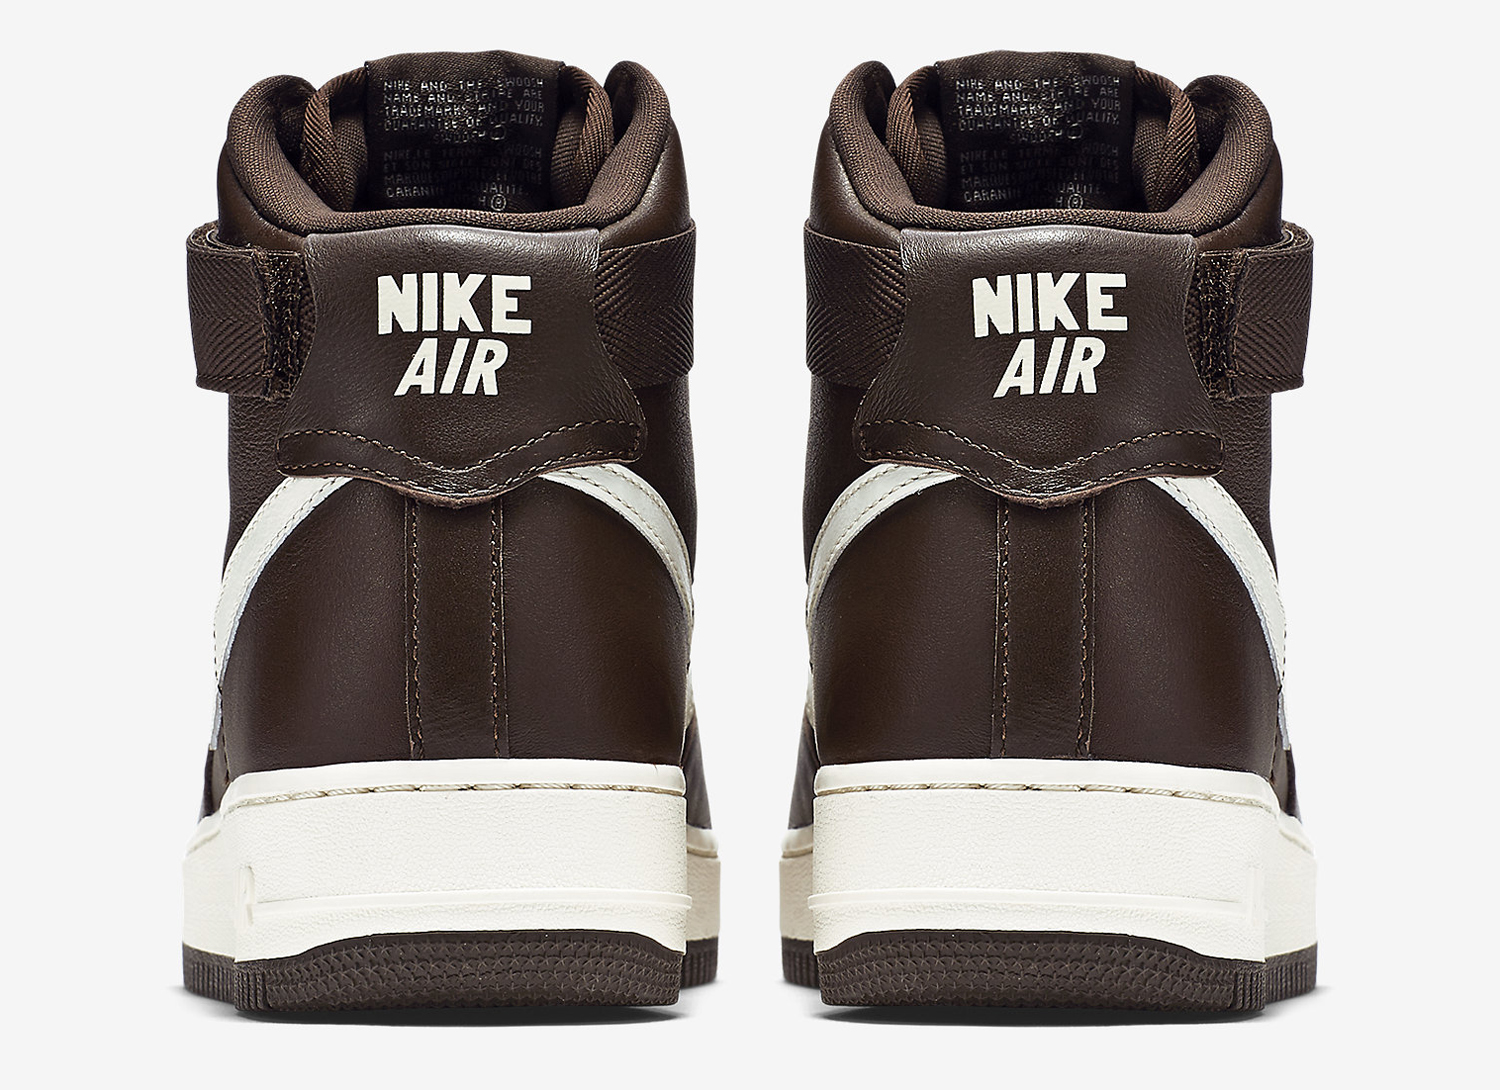 Nike's 'Color of the Month' Air Force 1 Pack Continues